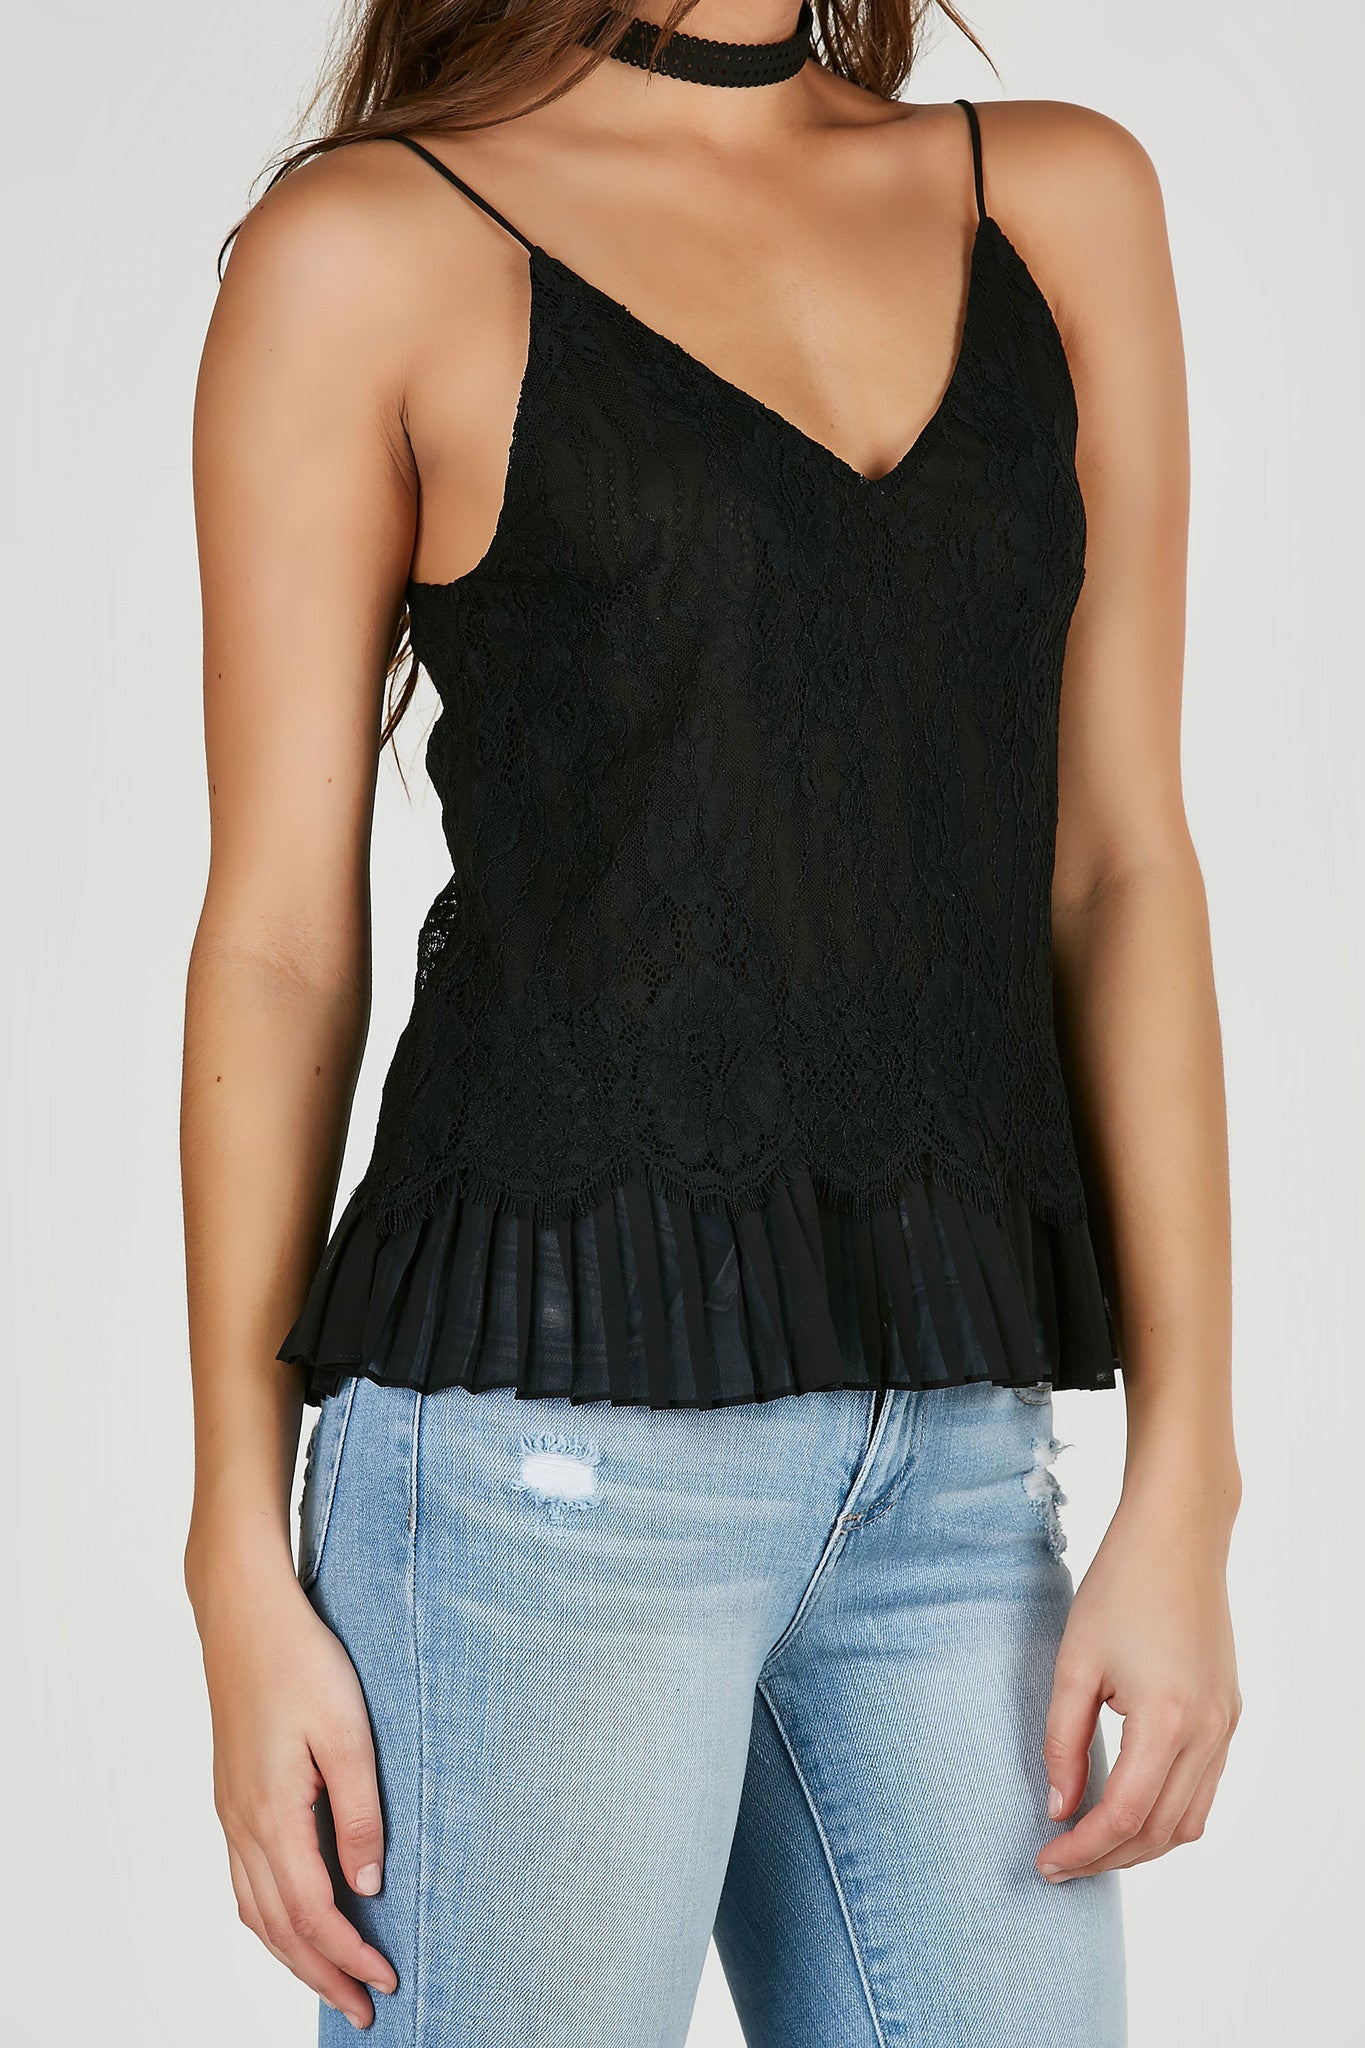 V-neck spaghetti strap cami with delicate lace overlay. Pleated trimmed lining with relaxed fit.